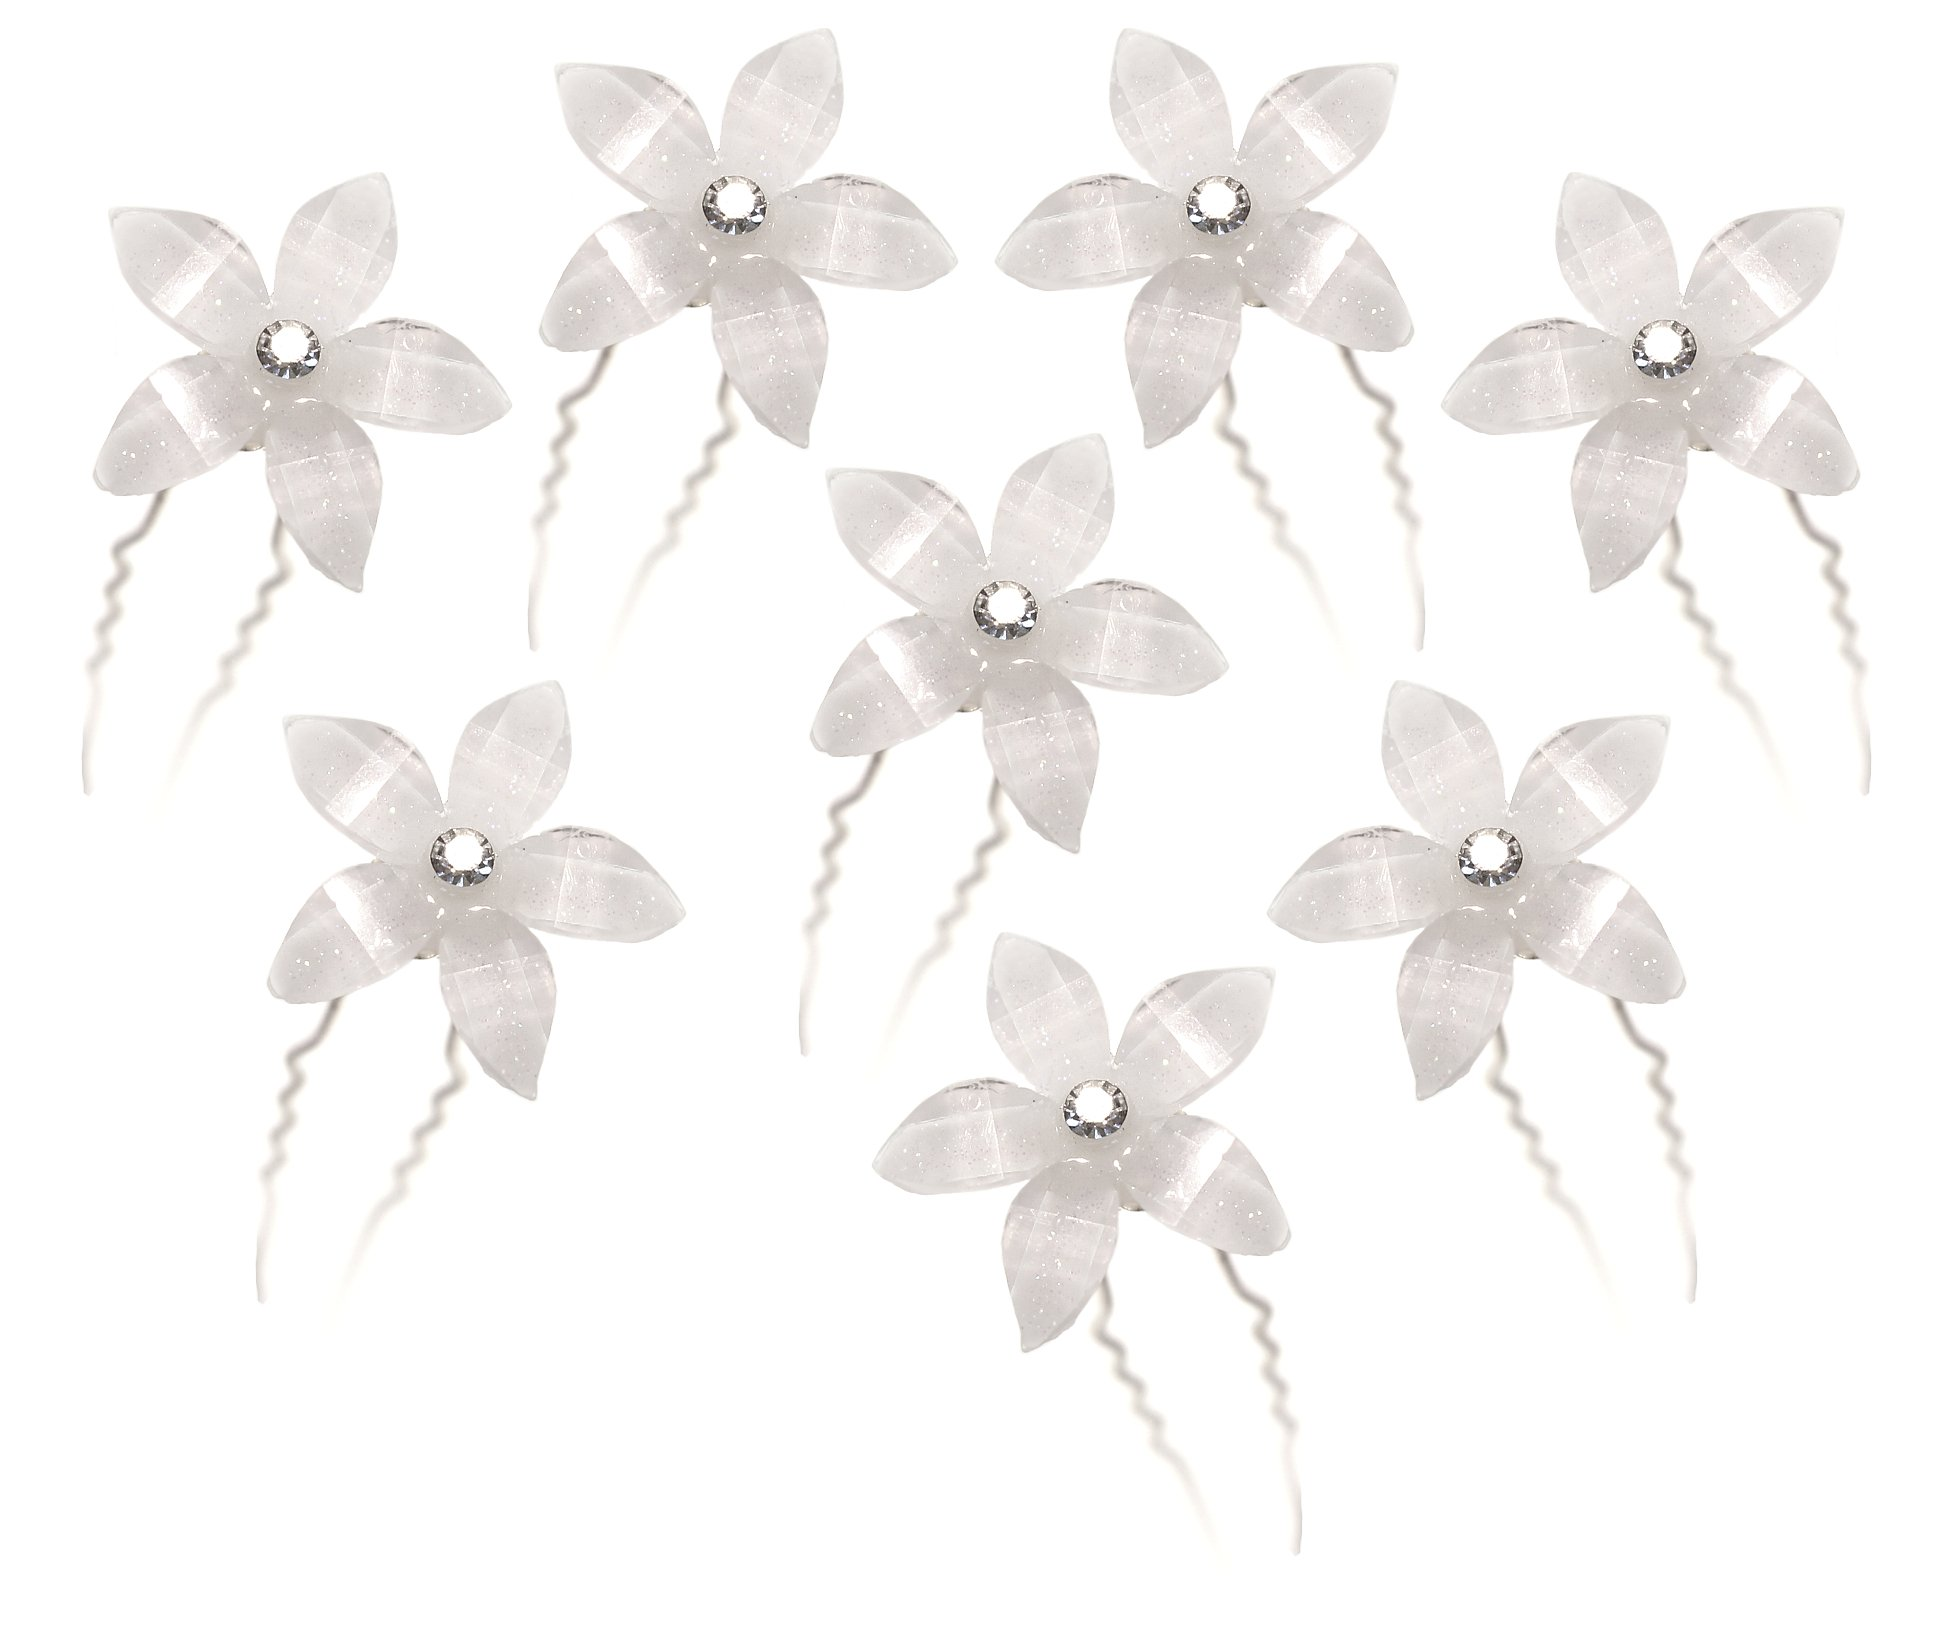 CB Accessories White Flower Hair Pins with Rhinestone Crystal for Wedding, Prom, Dance and Special Event (Set of 8) by CB Accessories